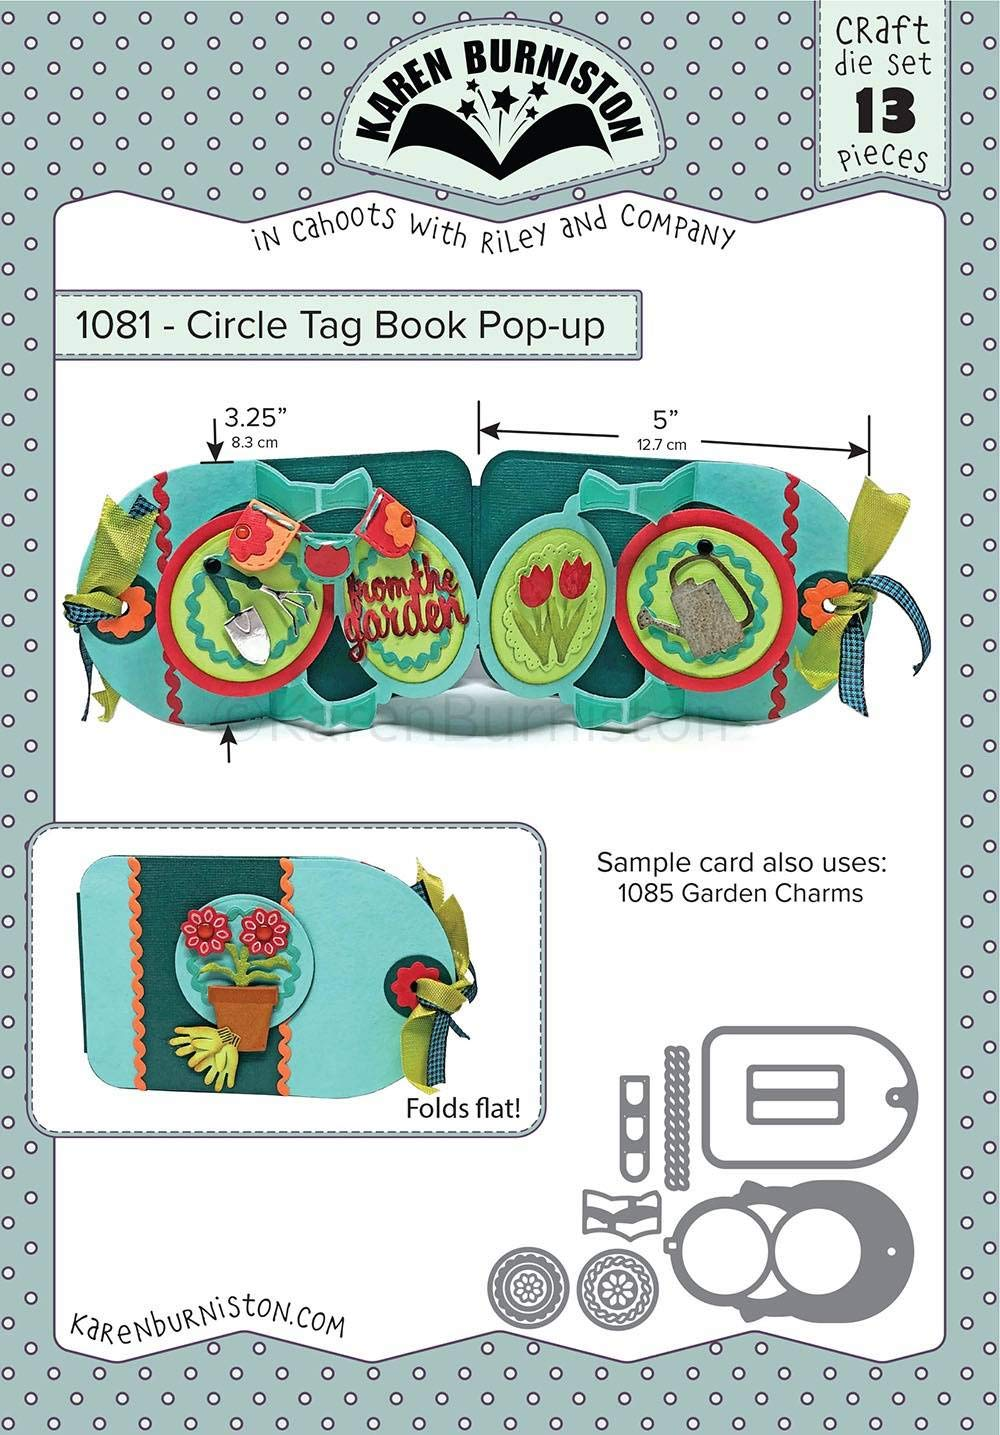 Karen Burniston Dies-circle Tag Book Pop-up